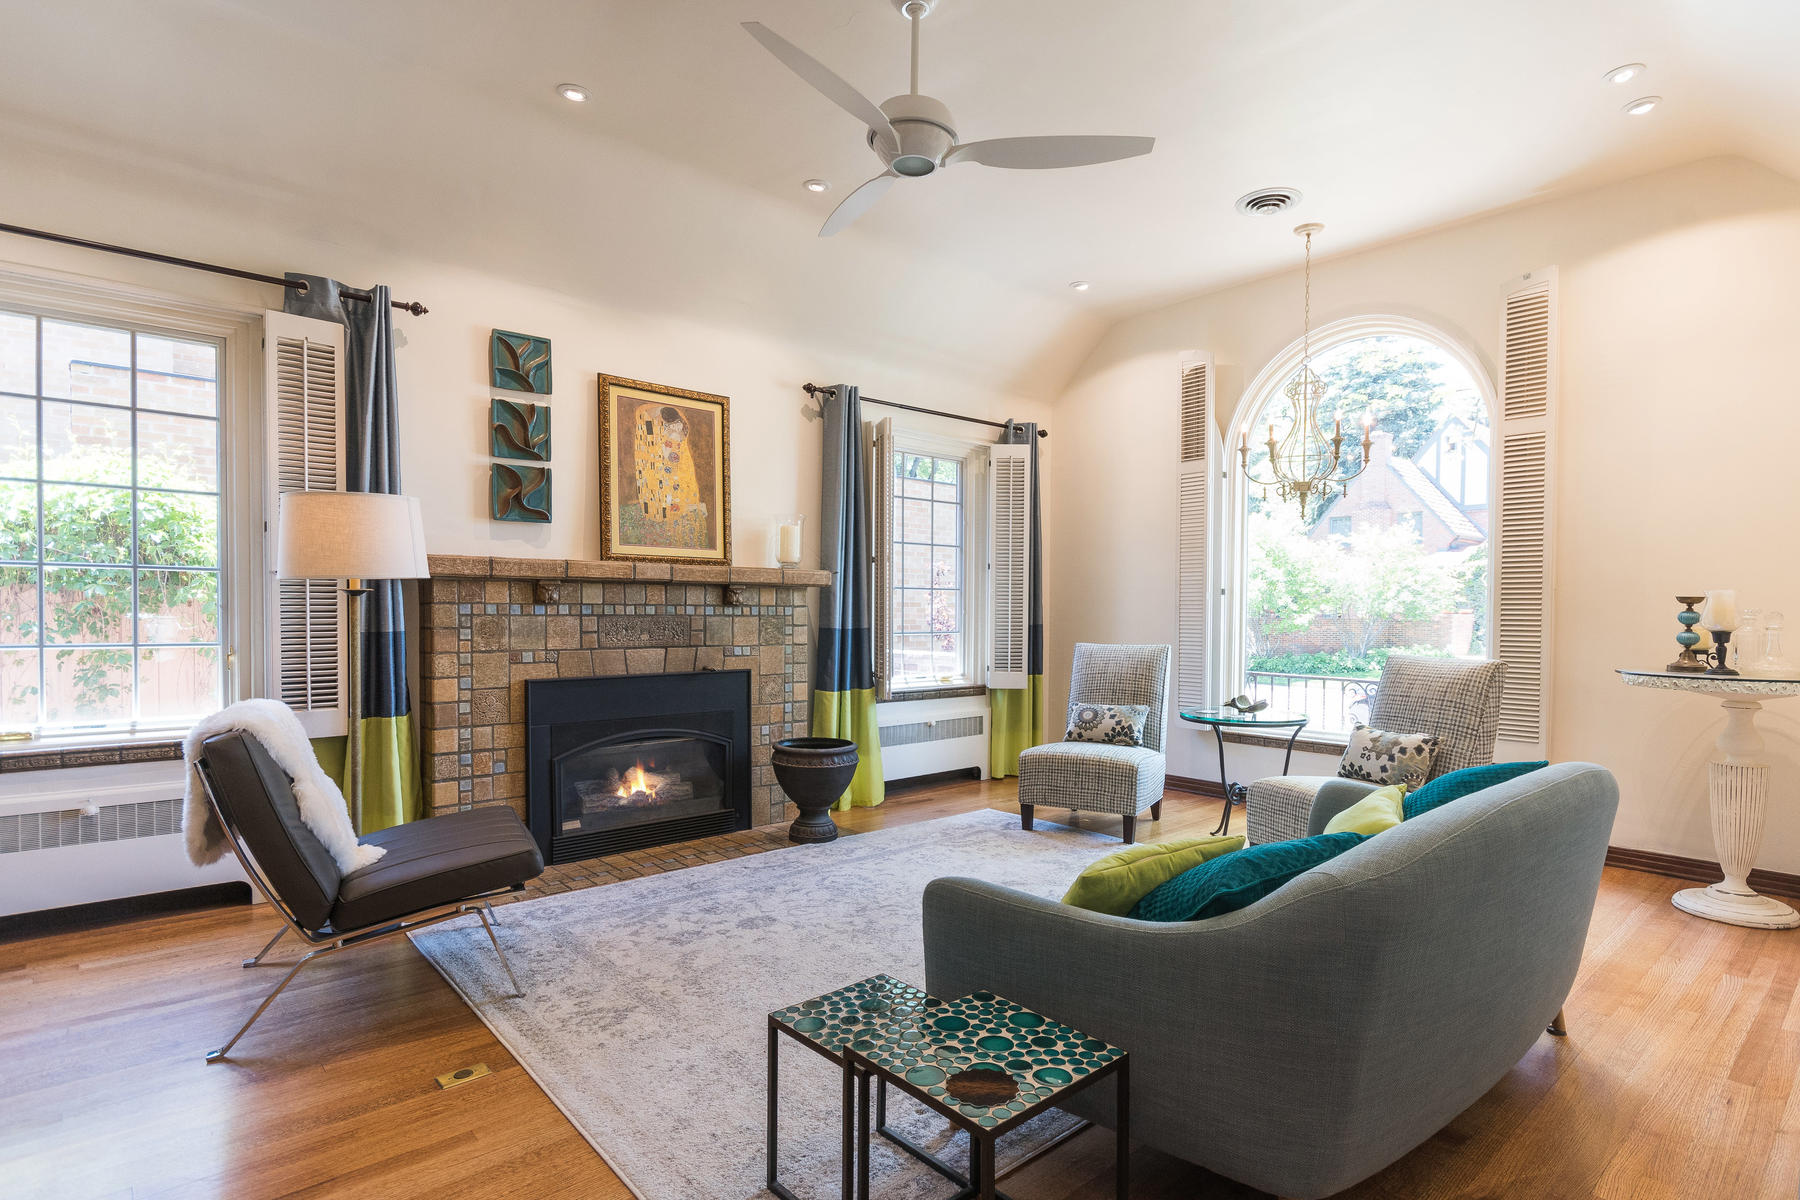 Additional photo for property listing at Welcome to an amazing and thoughtfully remodeled Tudor in Montclair 620 Jersey St Denver, Colorado 80220 United States